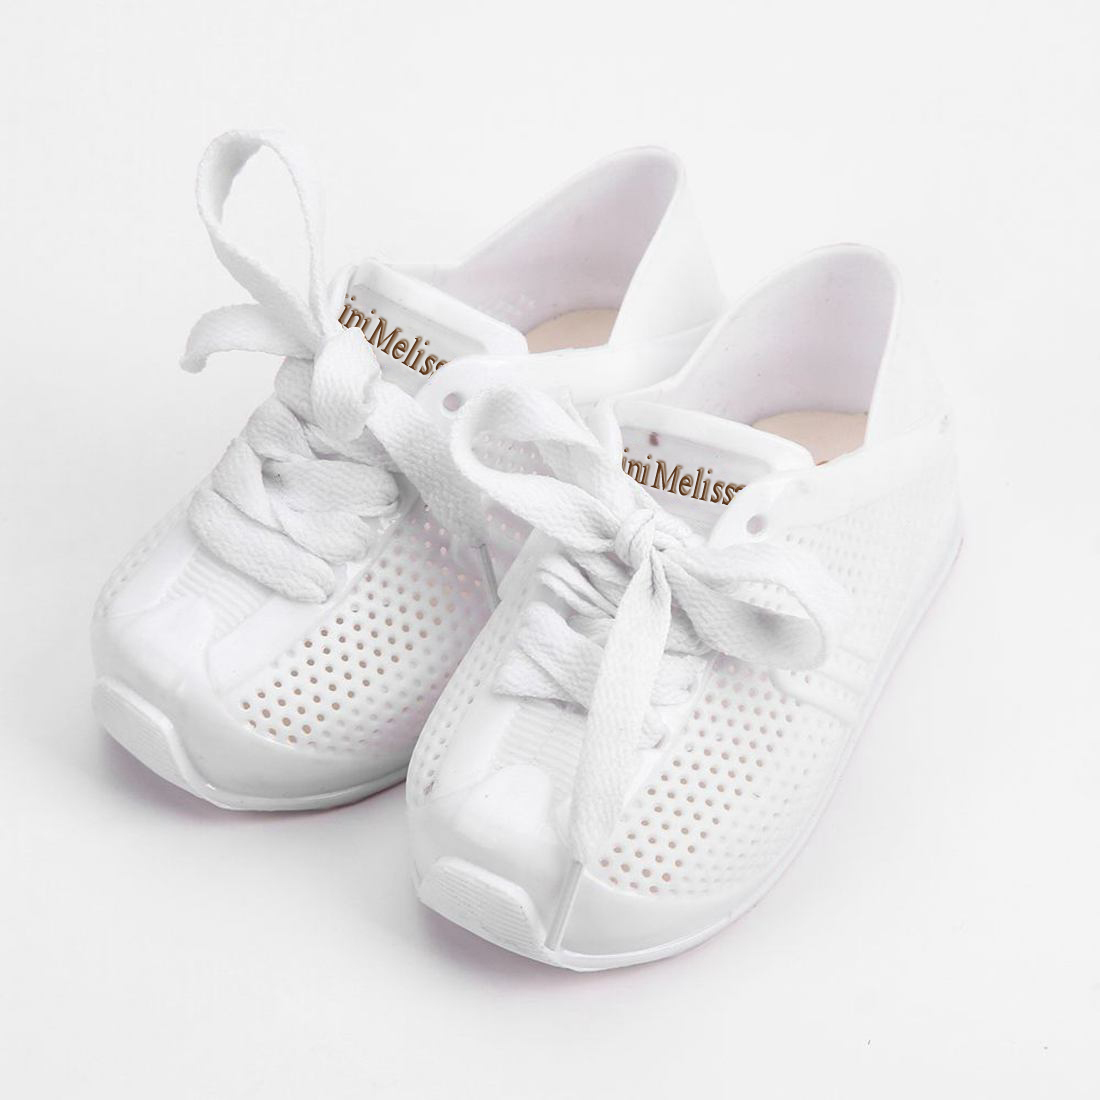 hot Mini Melissa Sports Shoes 2018 New Winter Flat Slip-on Kids Sandals Sneakers Breathable Shoes Love System Girl Keep Warmer